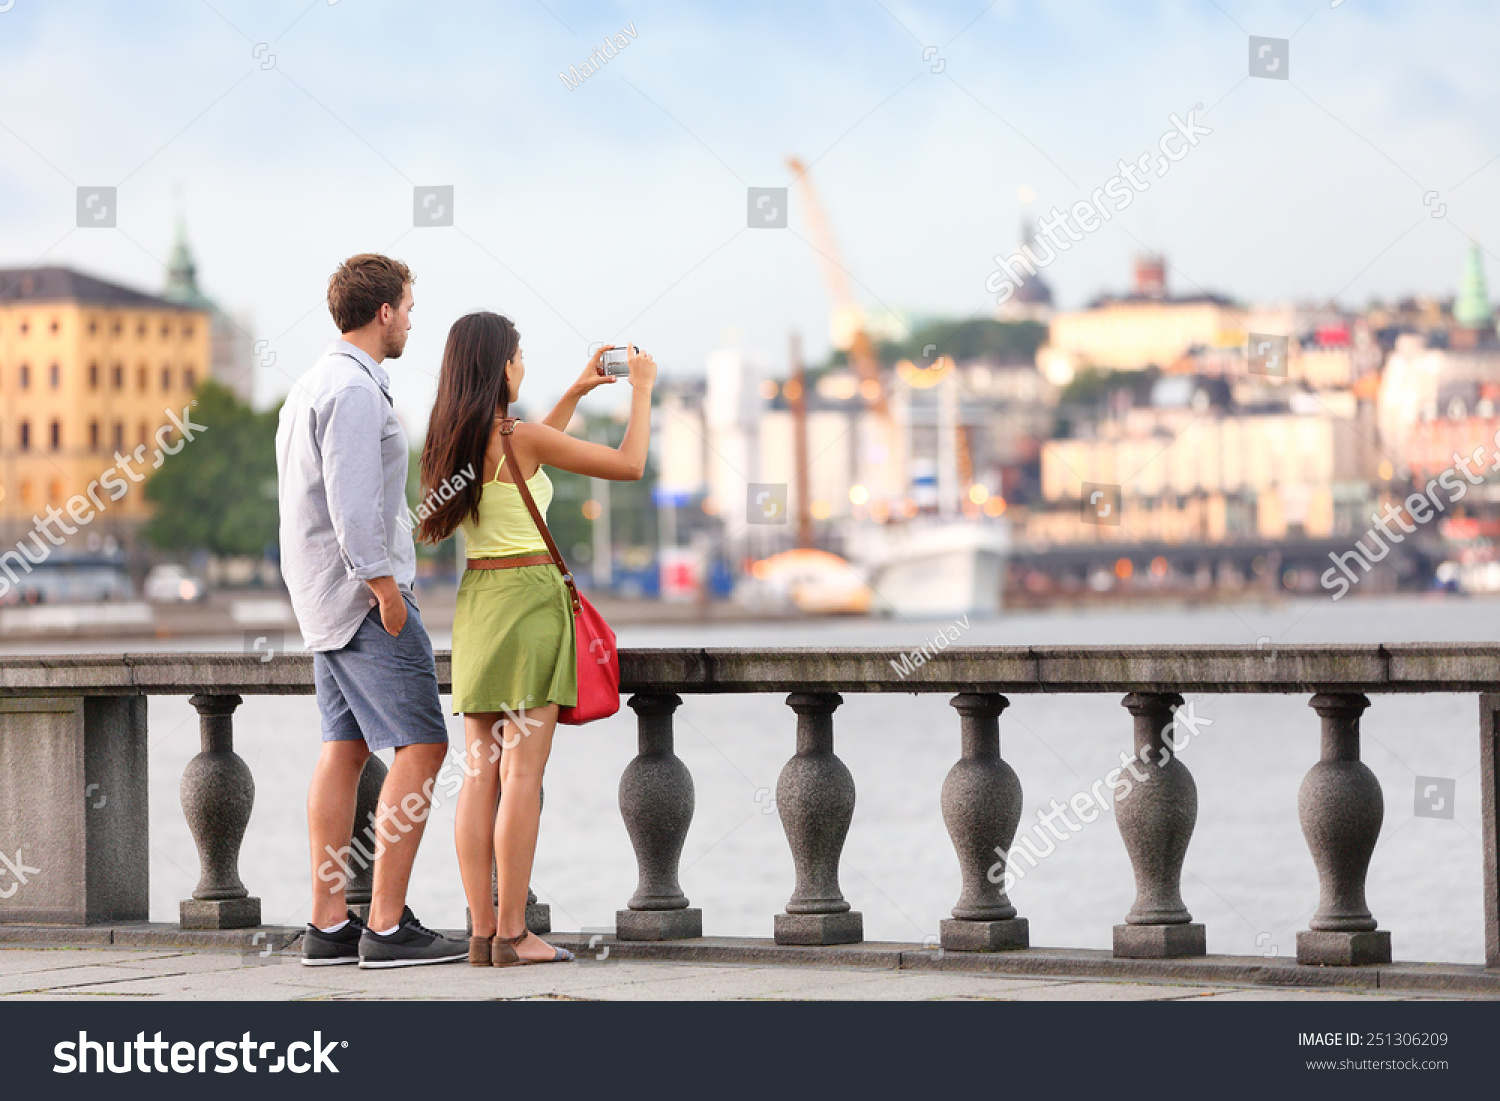 Tourist Happy Young Man Taking Selfie Photo Vernazza ... |Europe Tourist Taking